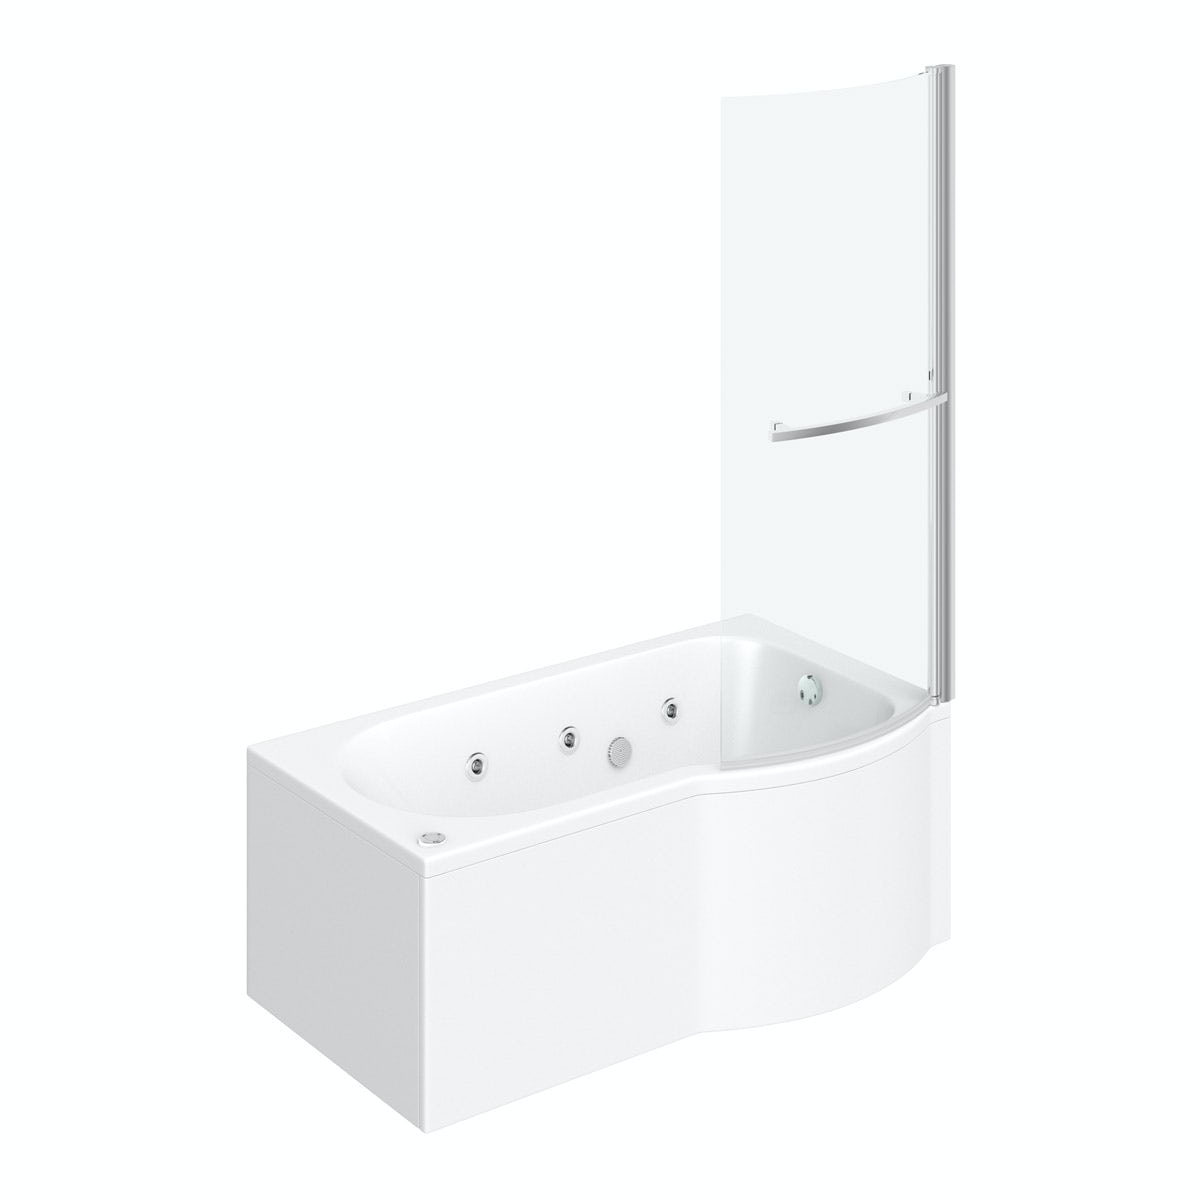 P shaped right handed 6 jet whirlpool shower bath with front panel and screen